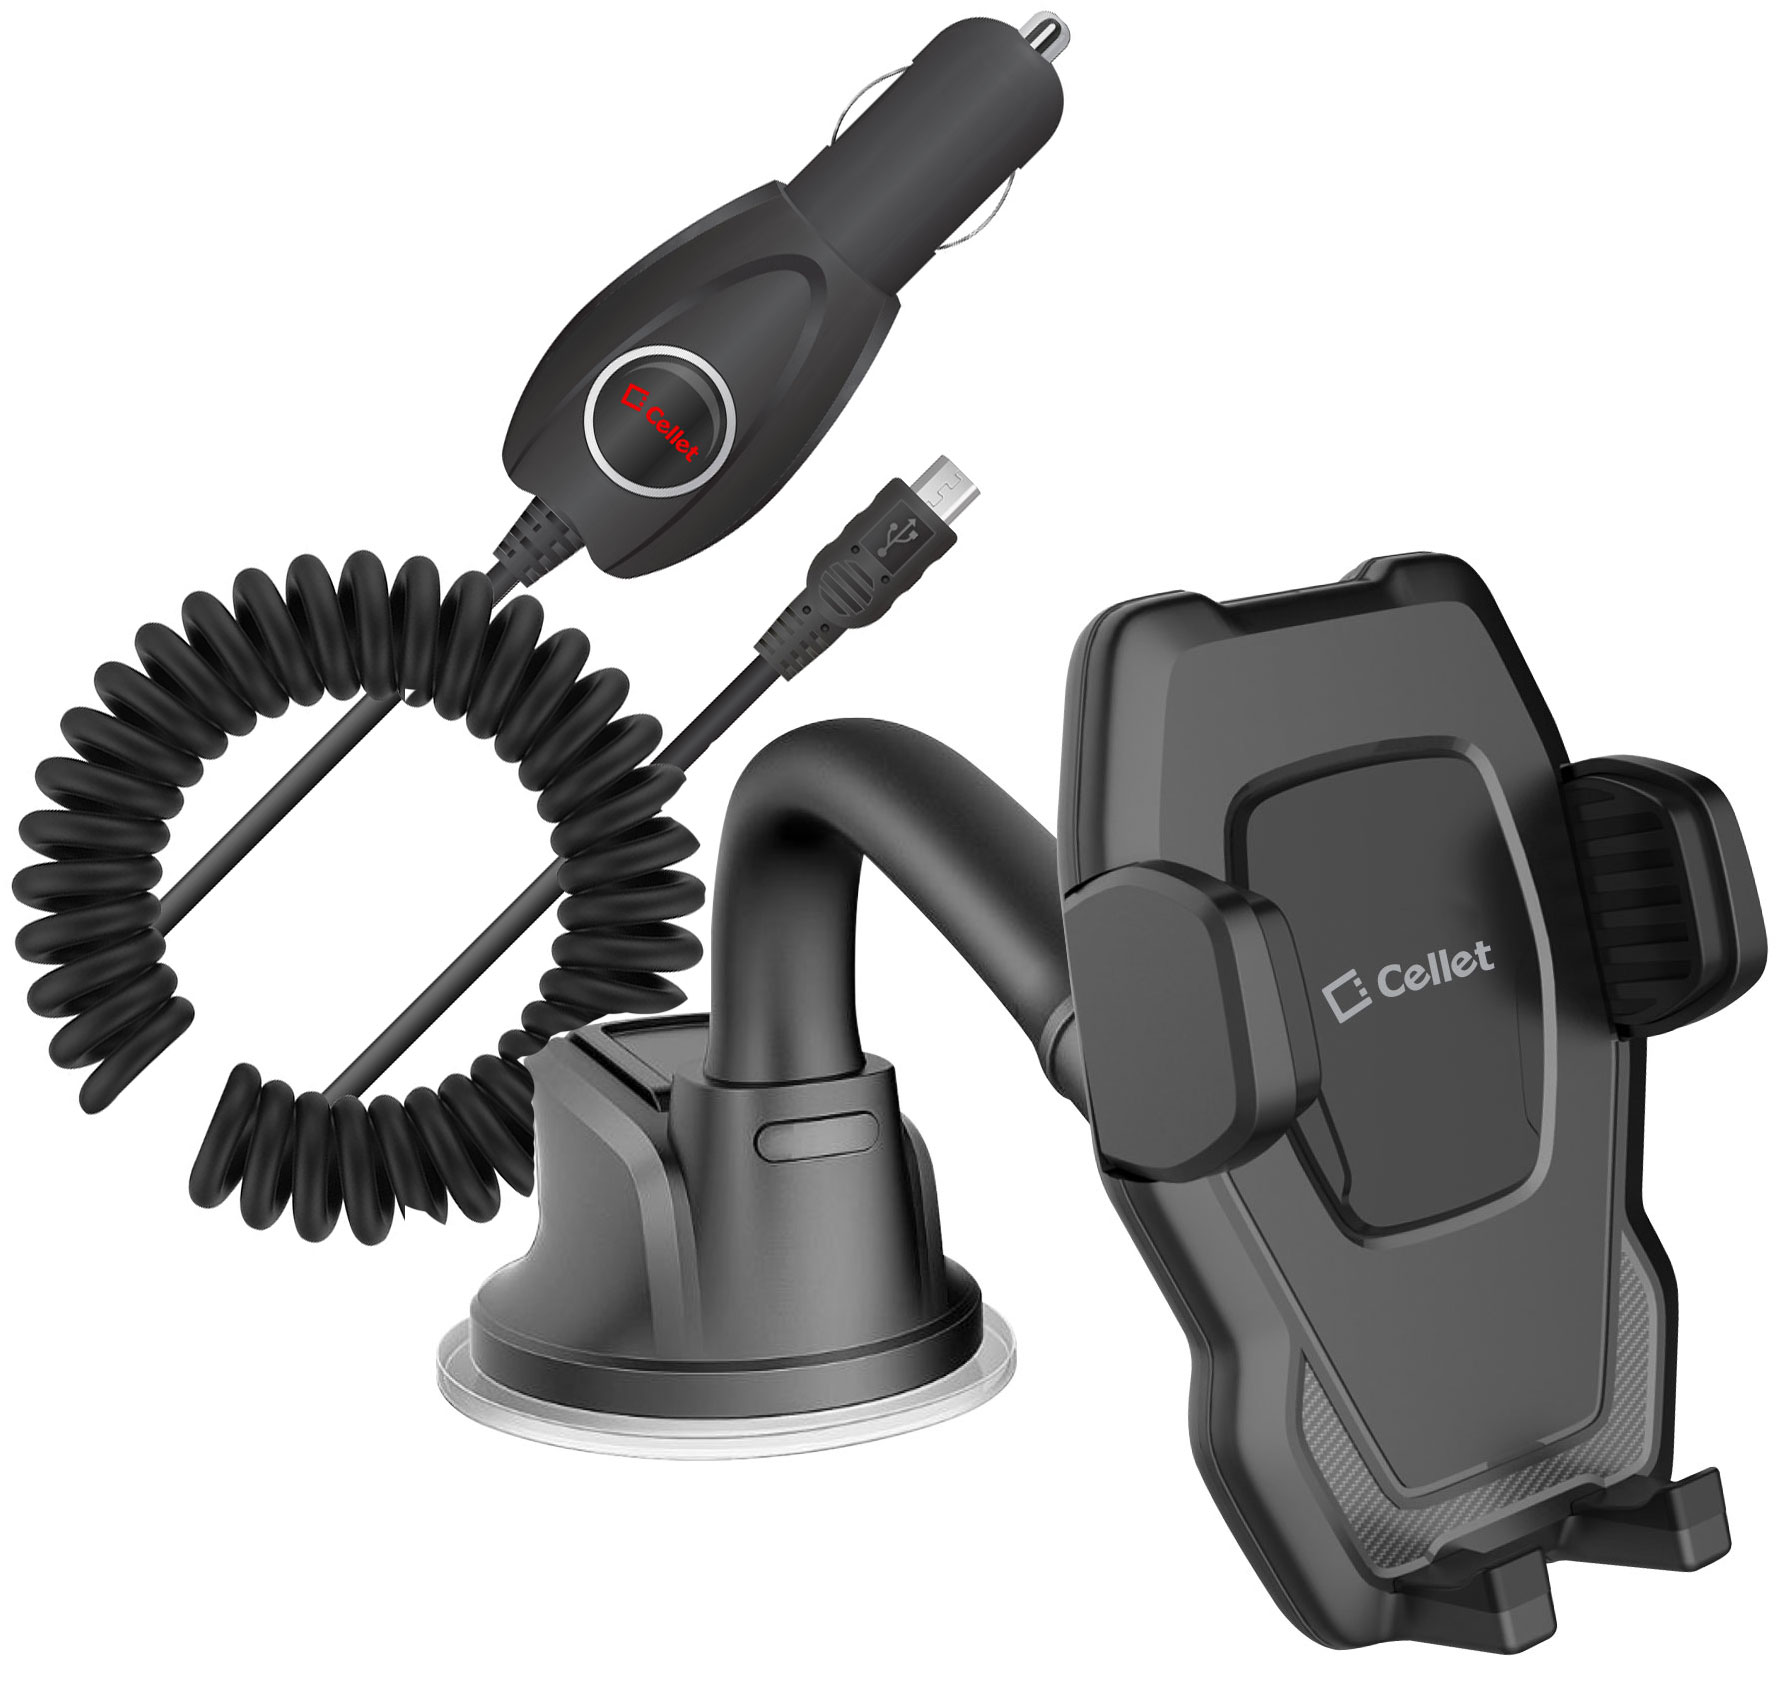 Huawei Ascend Mate2 Windshield Phone Holder Goose Neck Car Charger Black